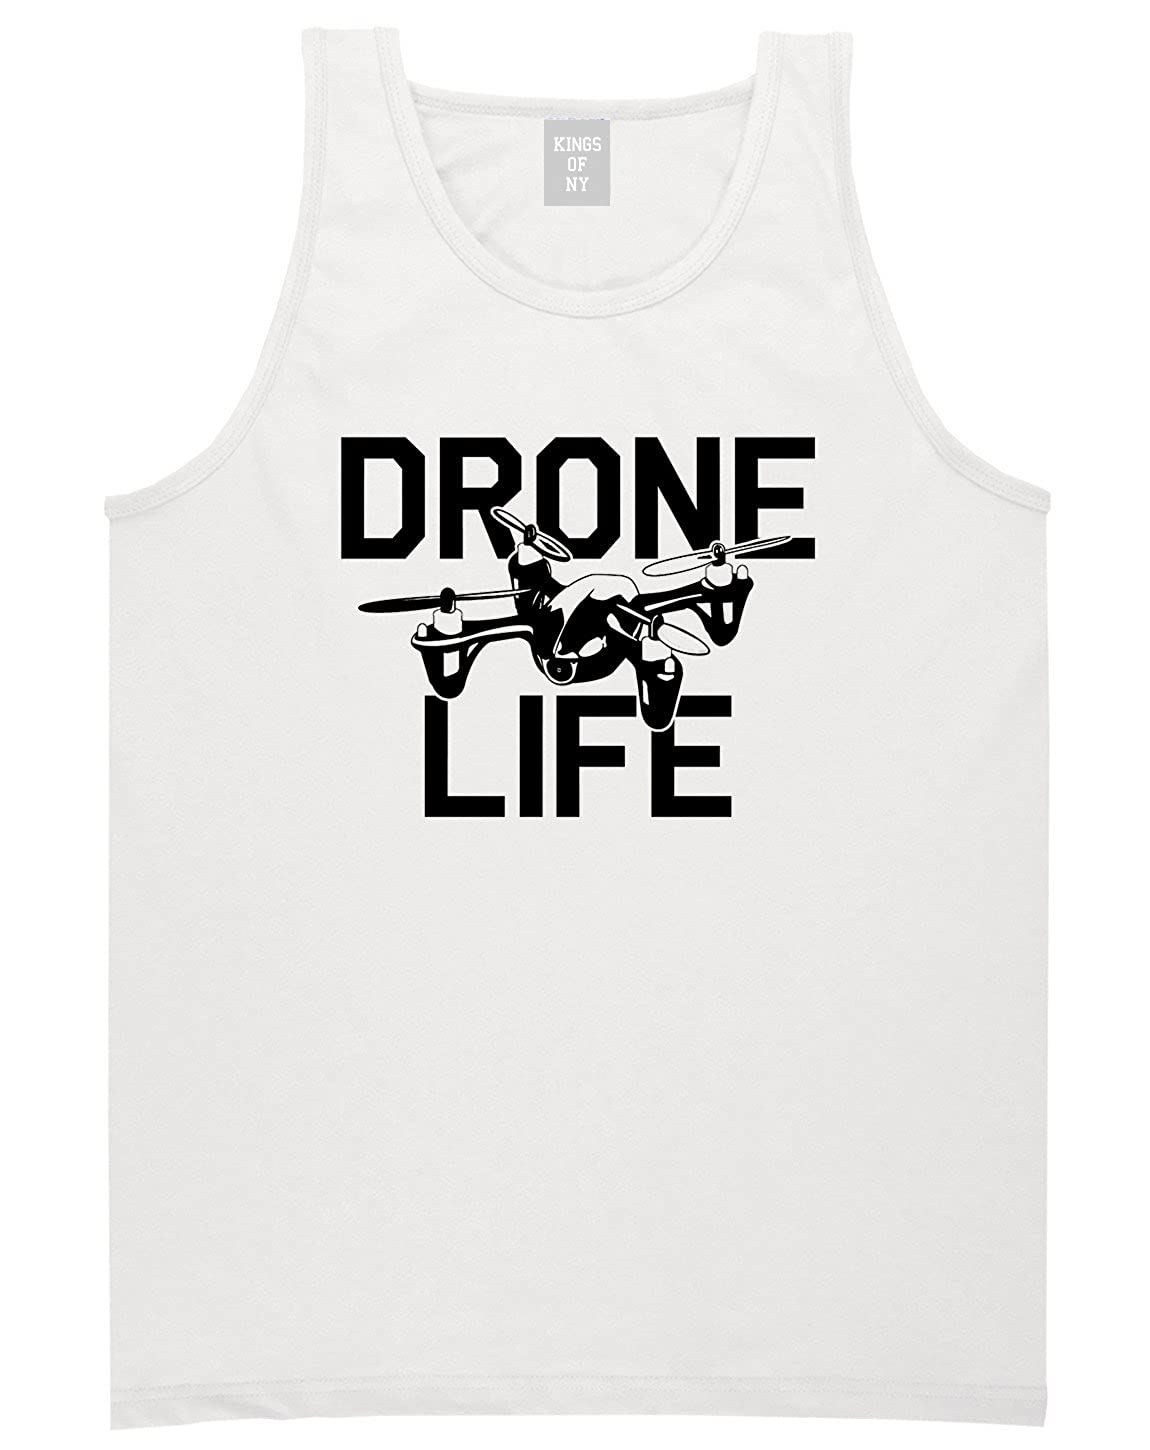 Drone Life Quadcopter Pilot Flying Geek Tee Funny Tank Top